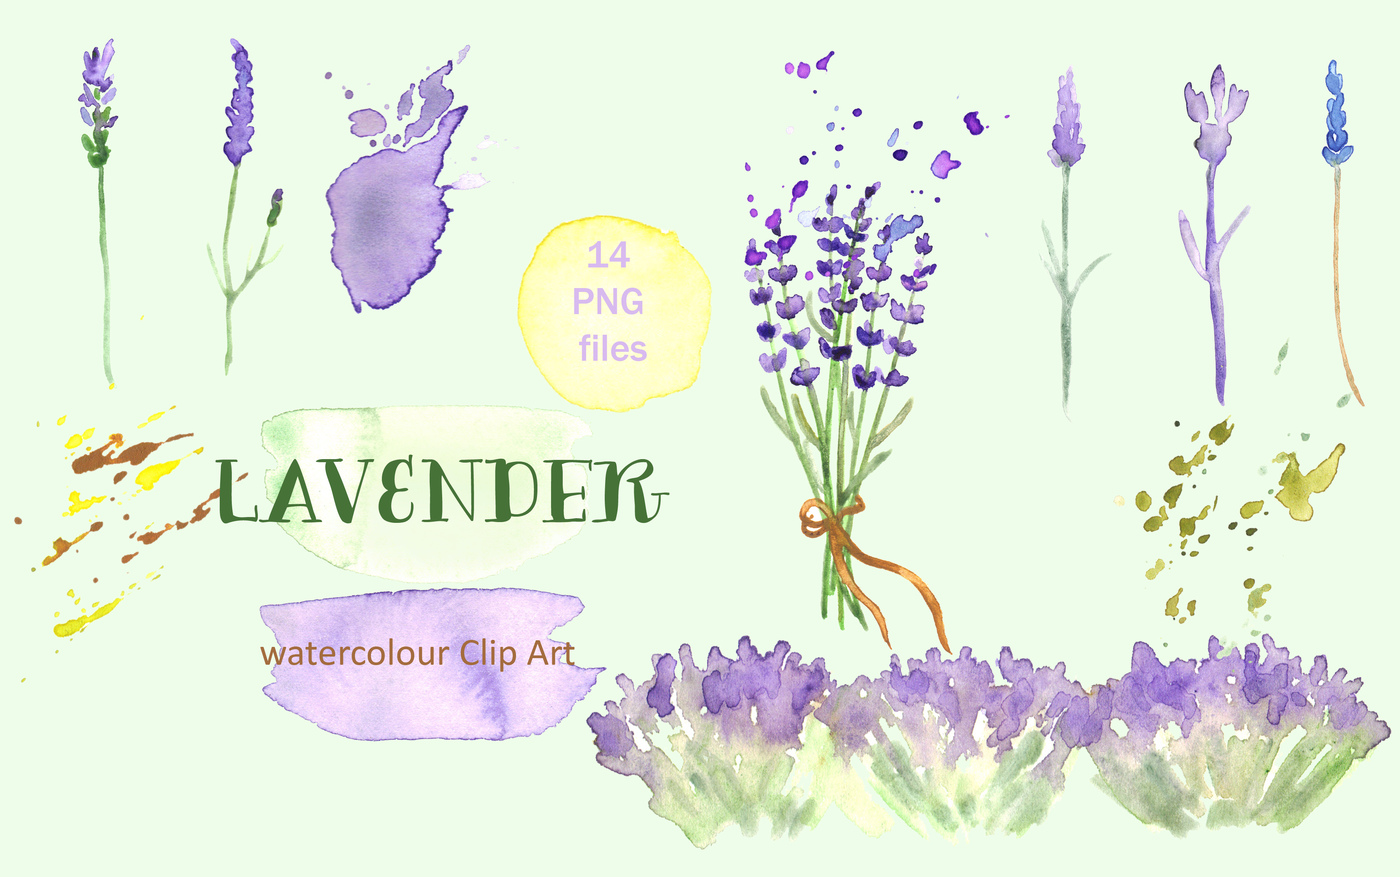 Lavender watercolor clip art by LABFcreations.